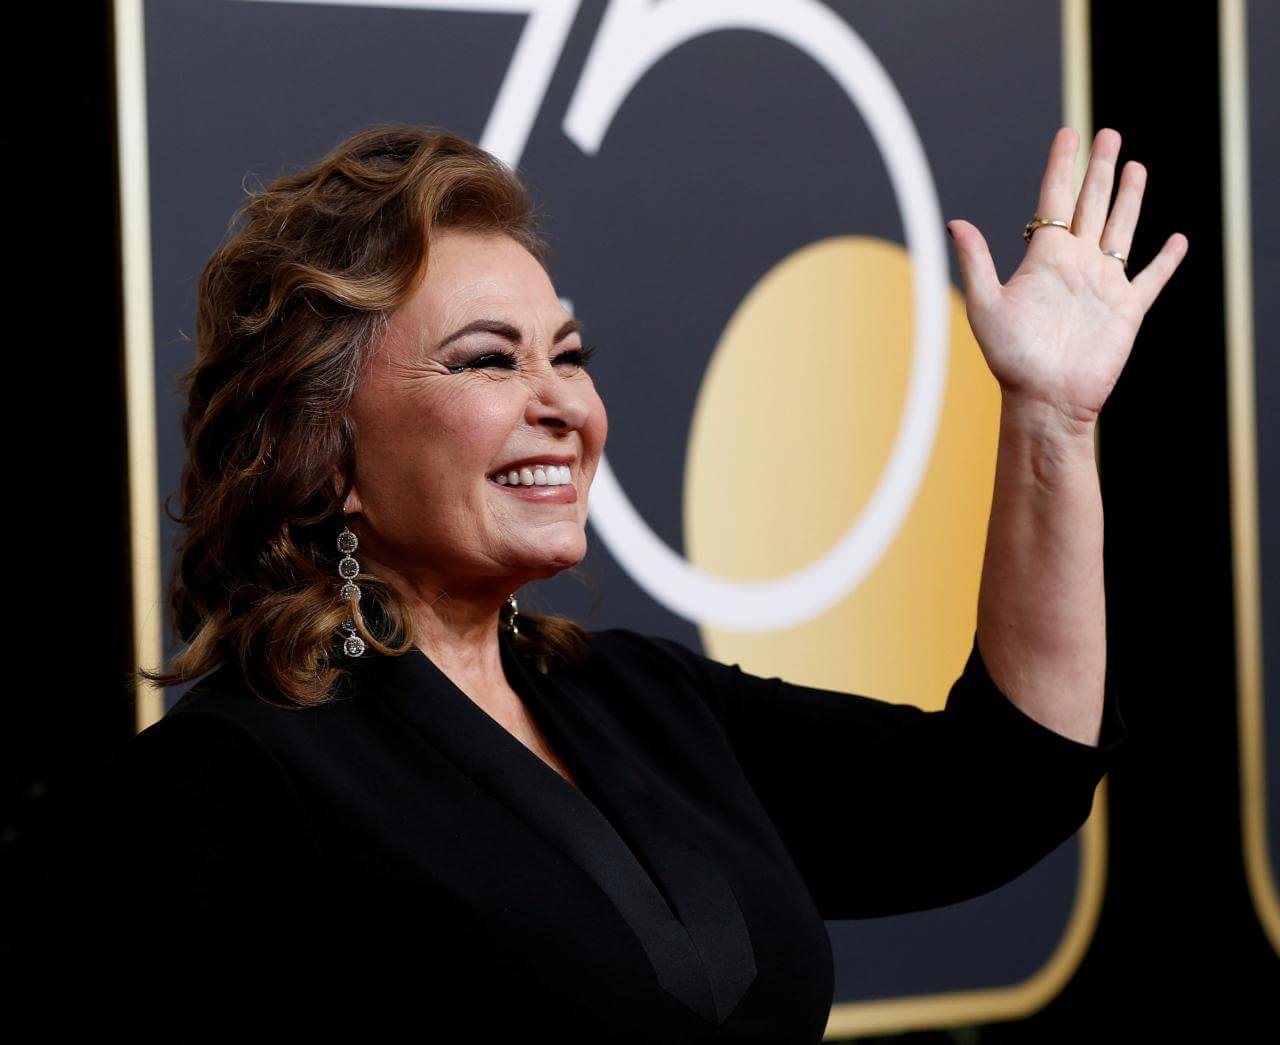 Roseanne Barr, lynching in India  It's time to curb Twitter